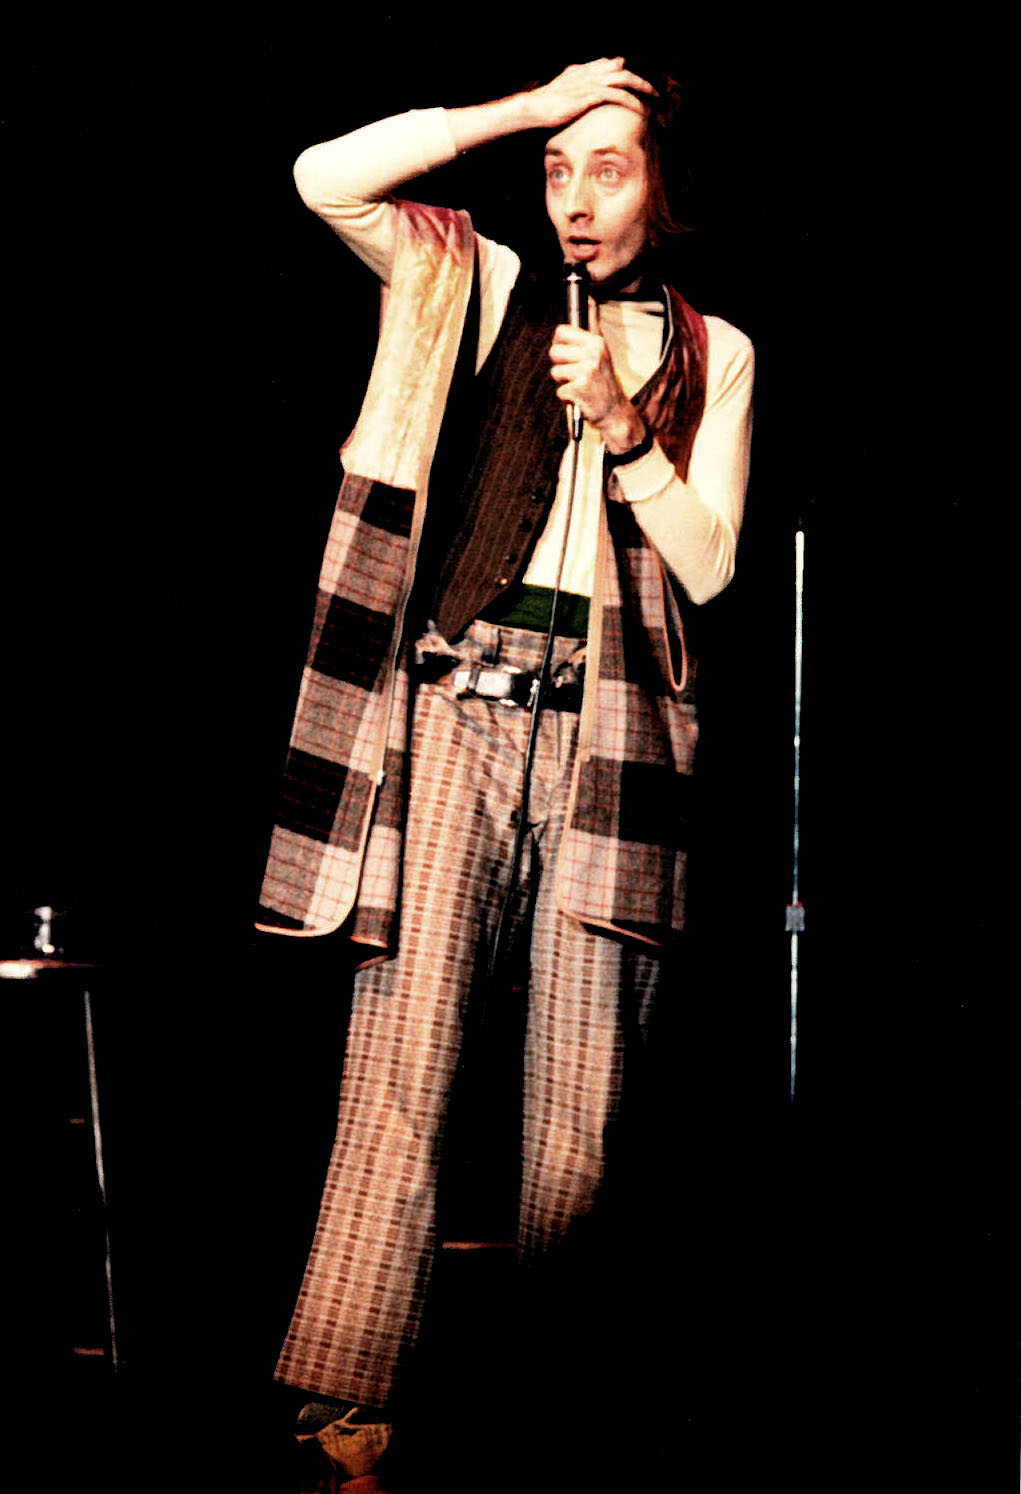 Wallace: The Windy City weirdo Emo_philips_onstage4x3-300